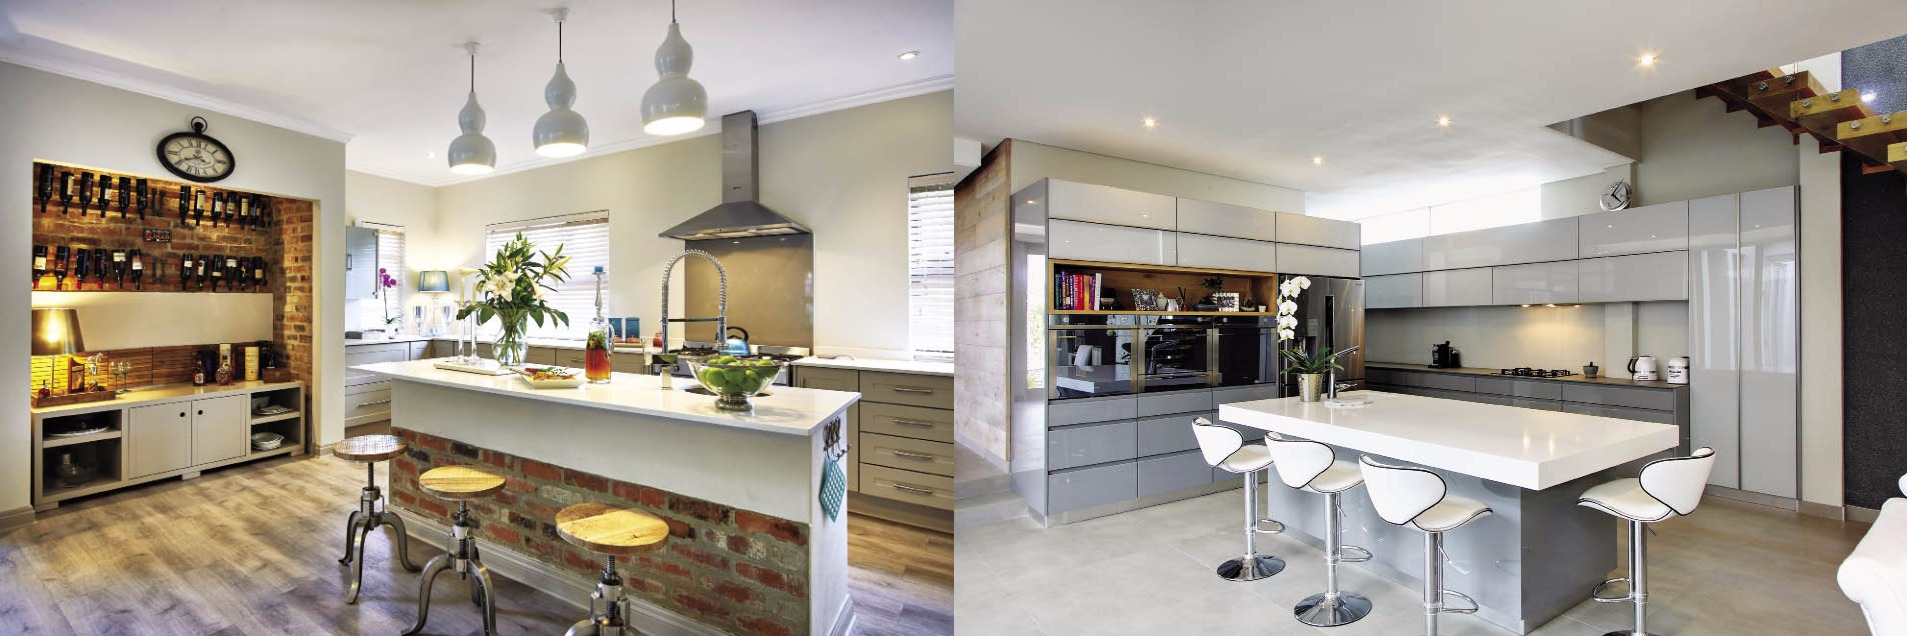 Kitchens Archives SA Home Owner - Kitchen designs sa